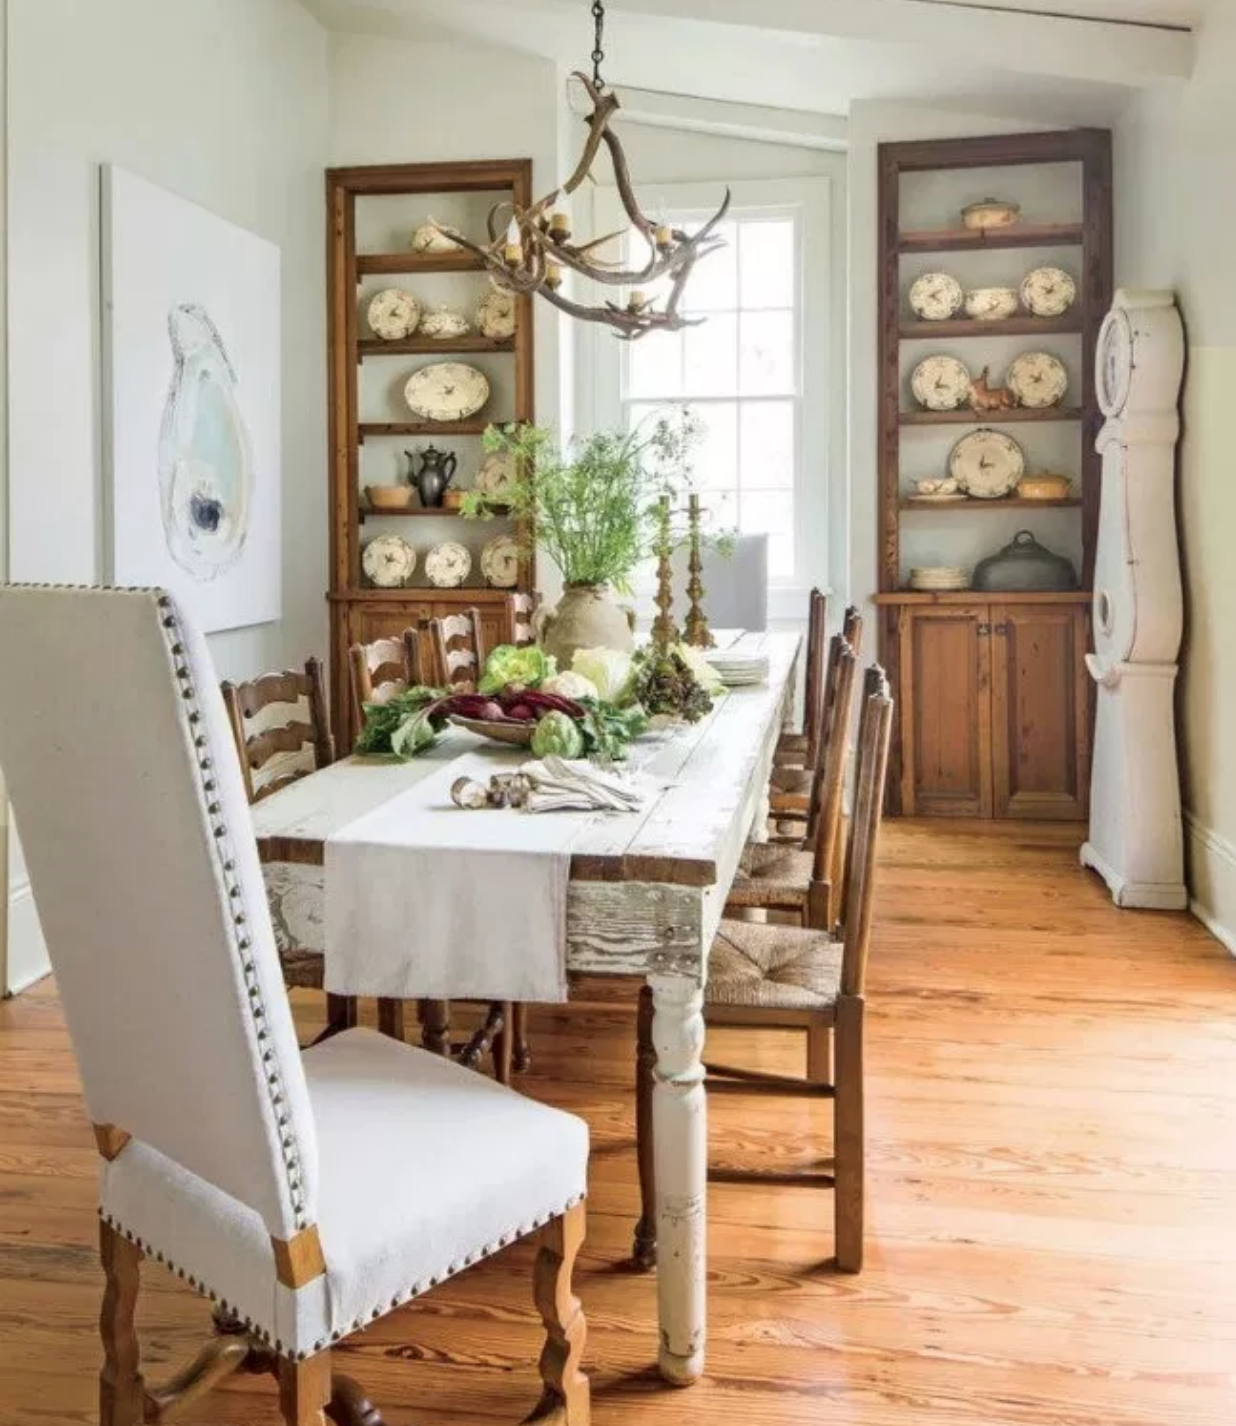 The 15 Most Beautiful Dining Rooms on Pinterest ... on Beautiful Room Pics  id=23215